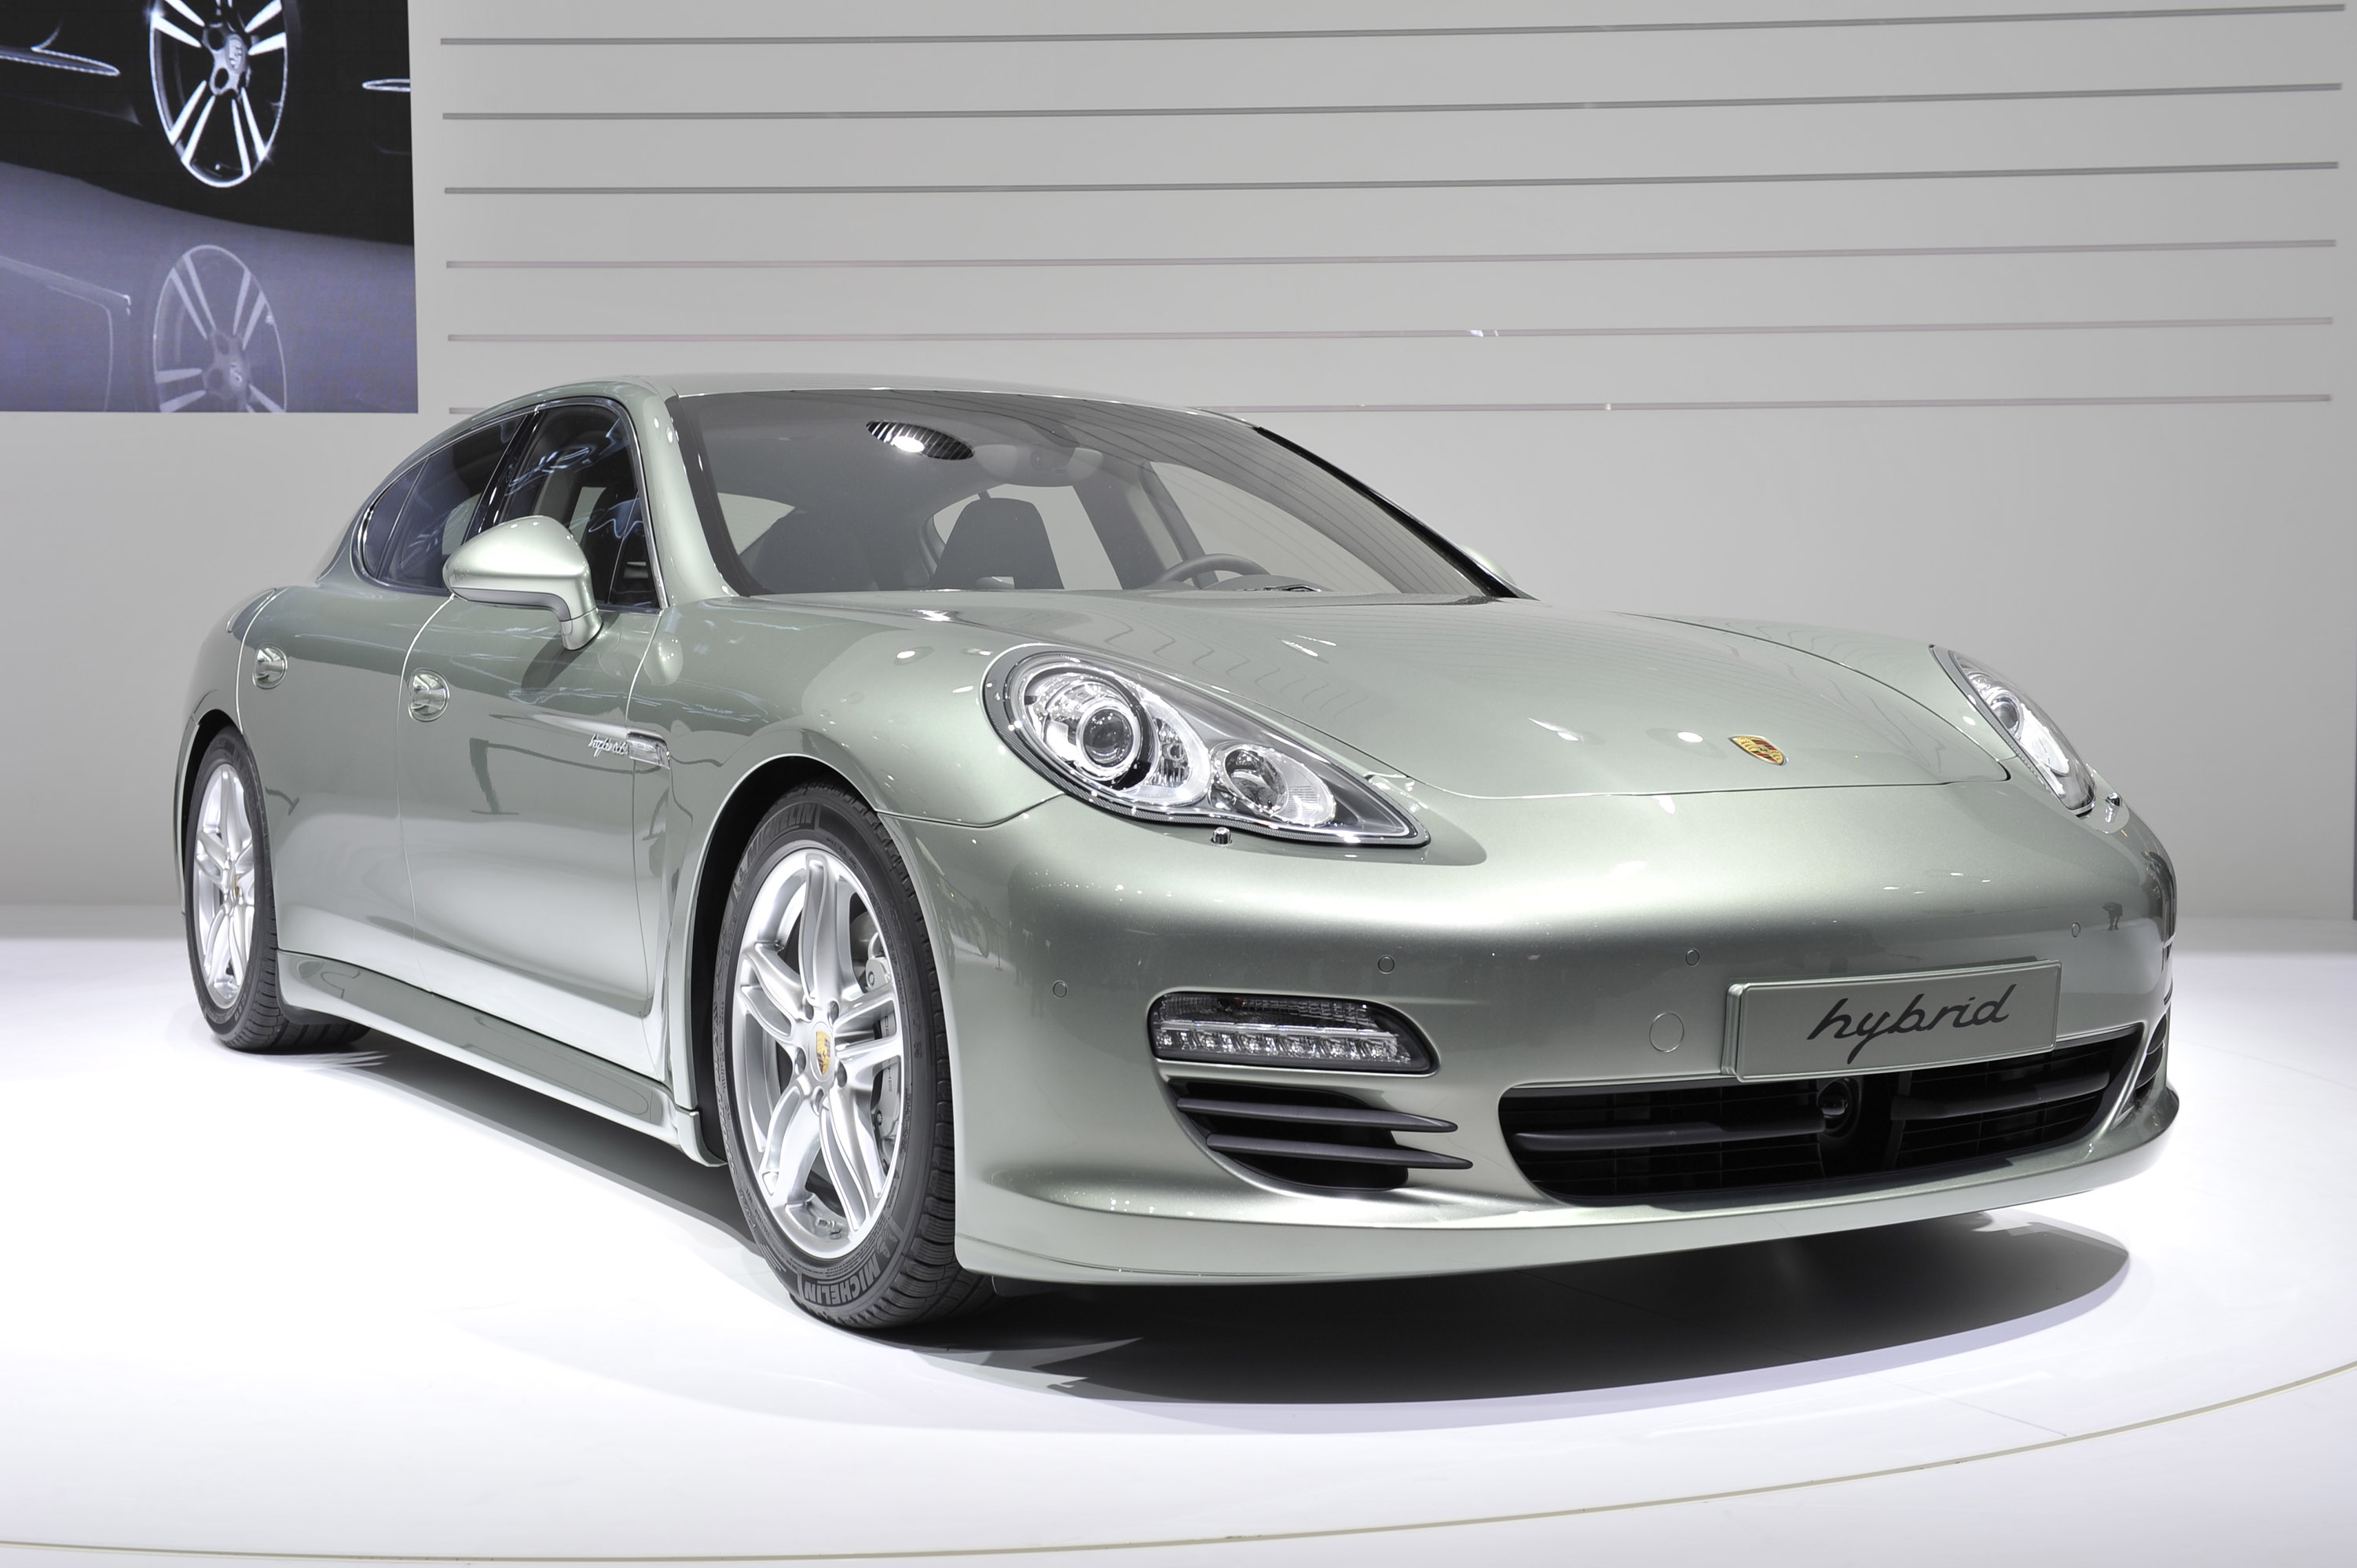 geneva 2011 porsche panamera s hybrid. Black Bedroom Furniture Sets. Home Design Ideas